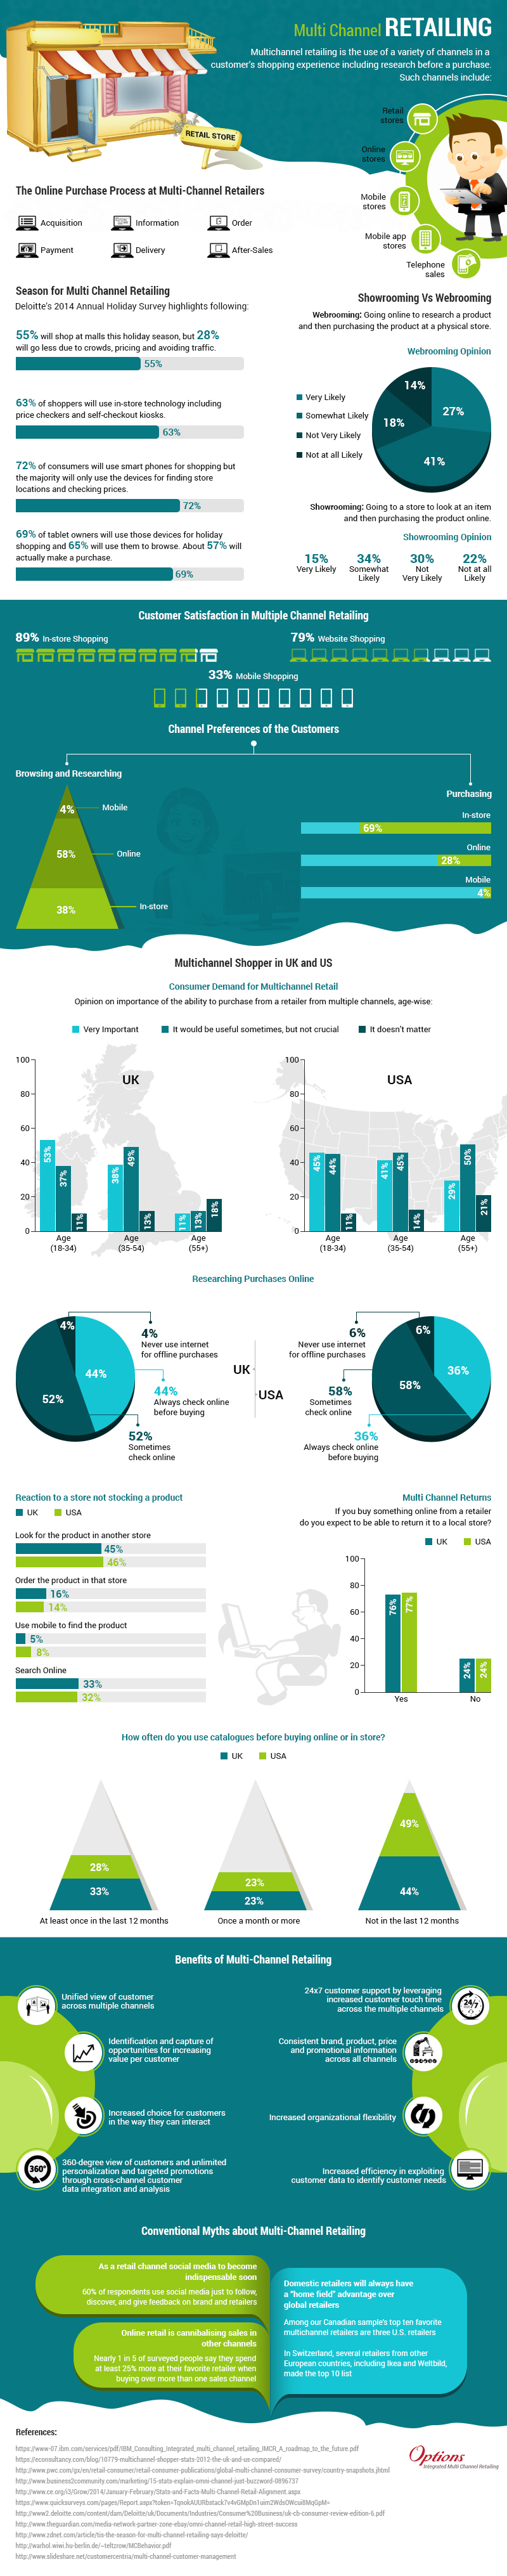 Multi Channel Retailing Infographic